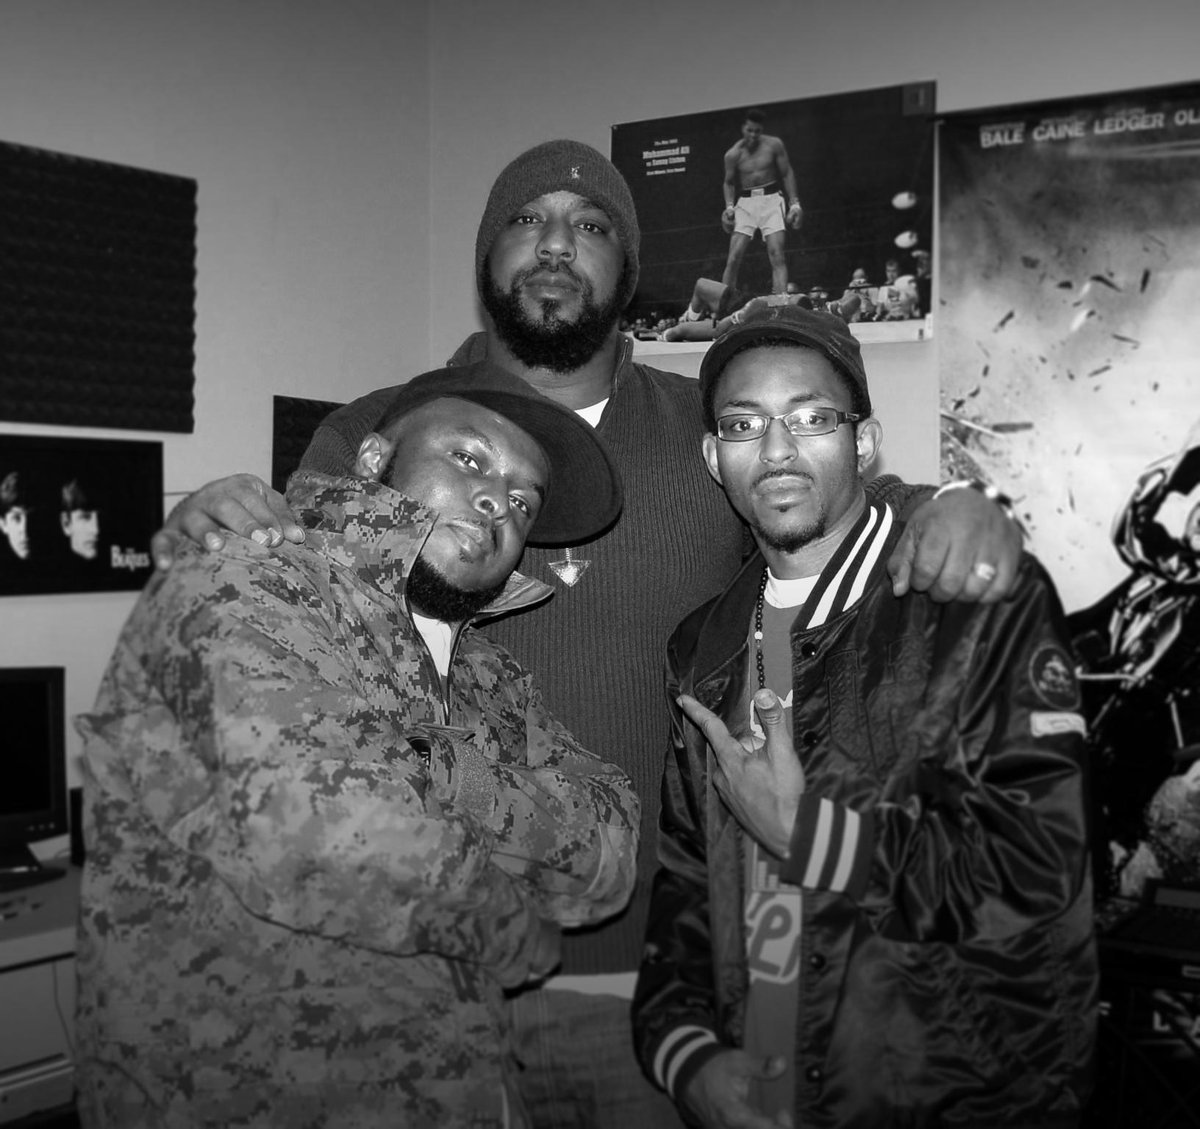 After we record..we had a dope conversation and he told me something that still inspires me today #Salute #SeanPrice http://t.co/2L1em4GJbf